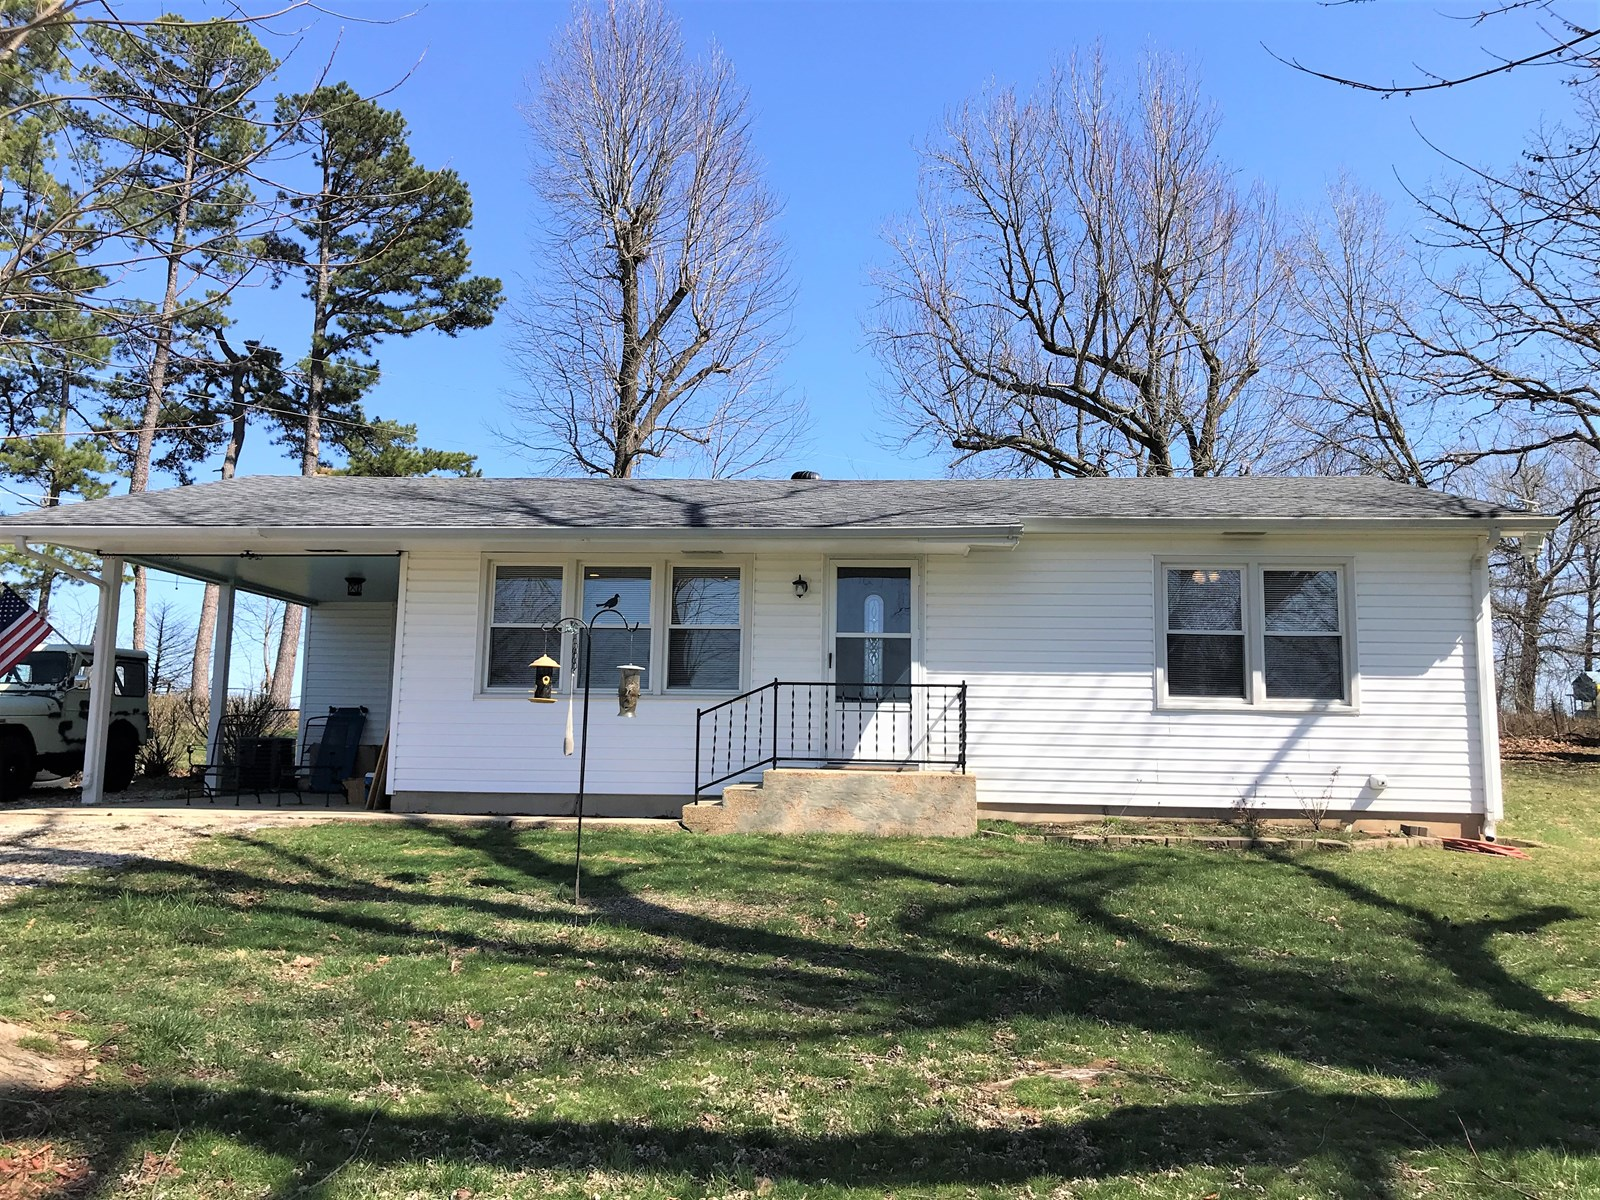 2 Bedroom home with country setting just outside city limits